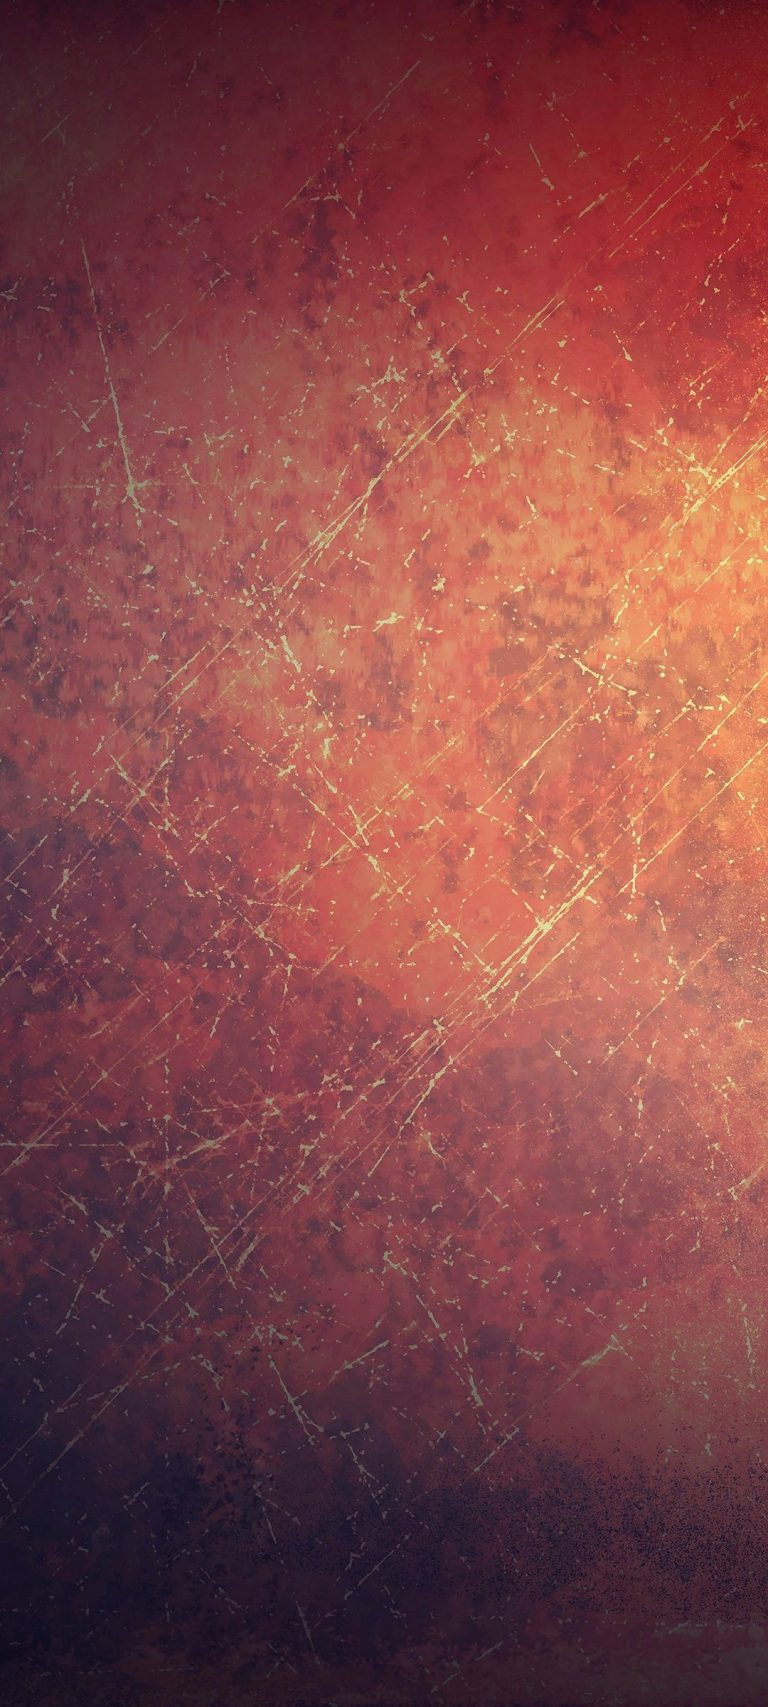 Surface Texture Stains Background 1080x2400 768x1707